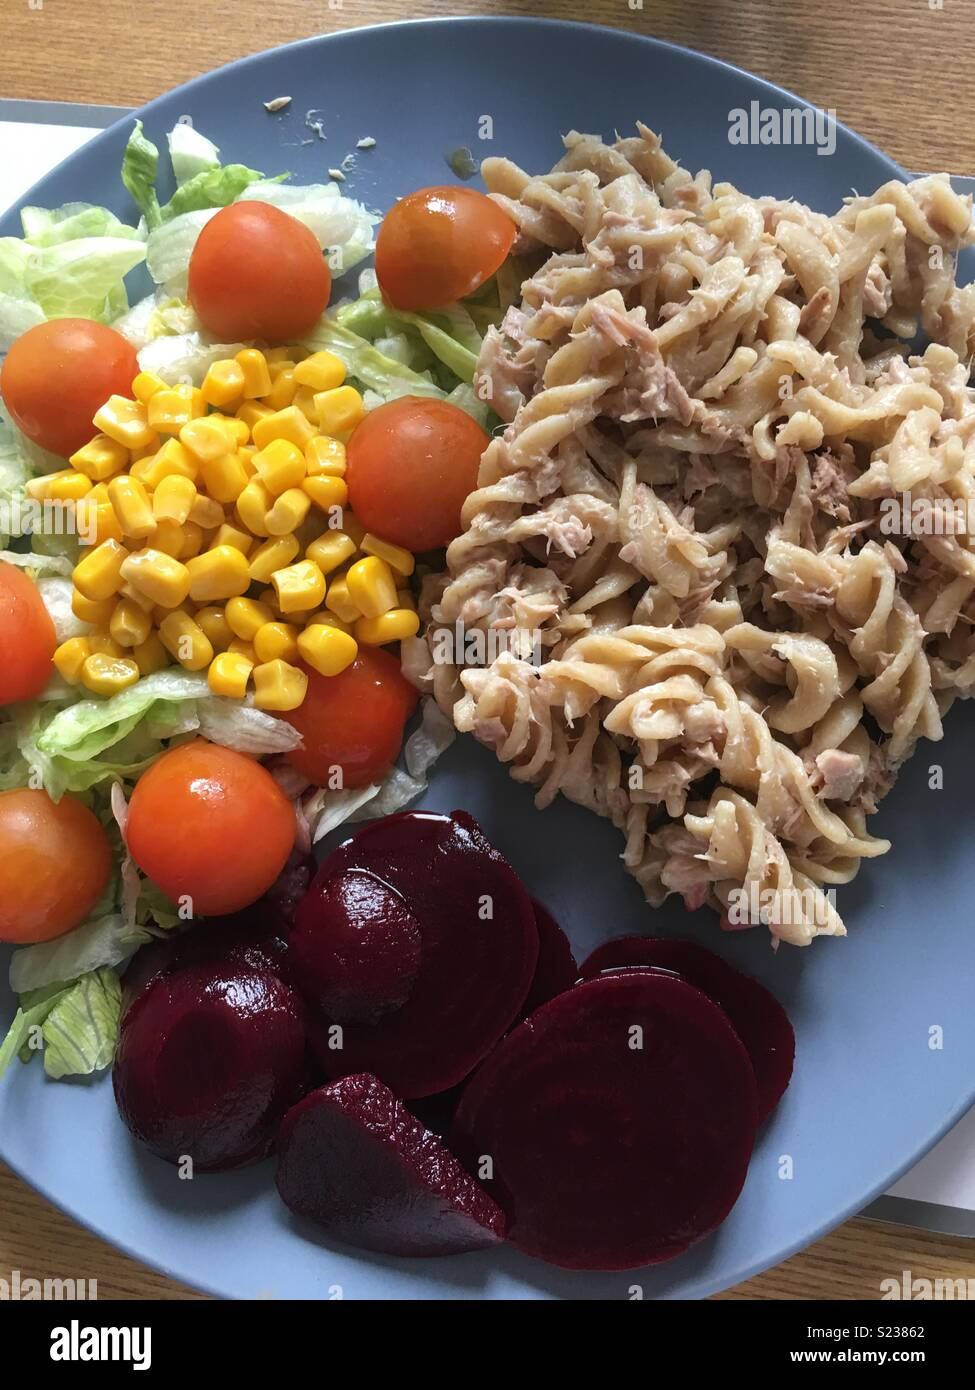 Slimming World Friendly Lunch - Stock Image